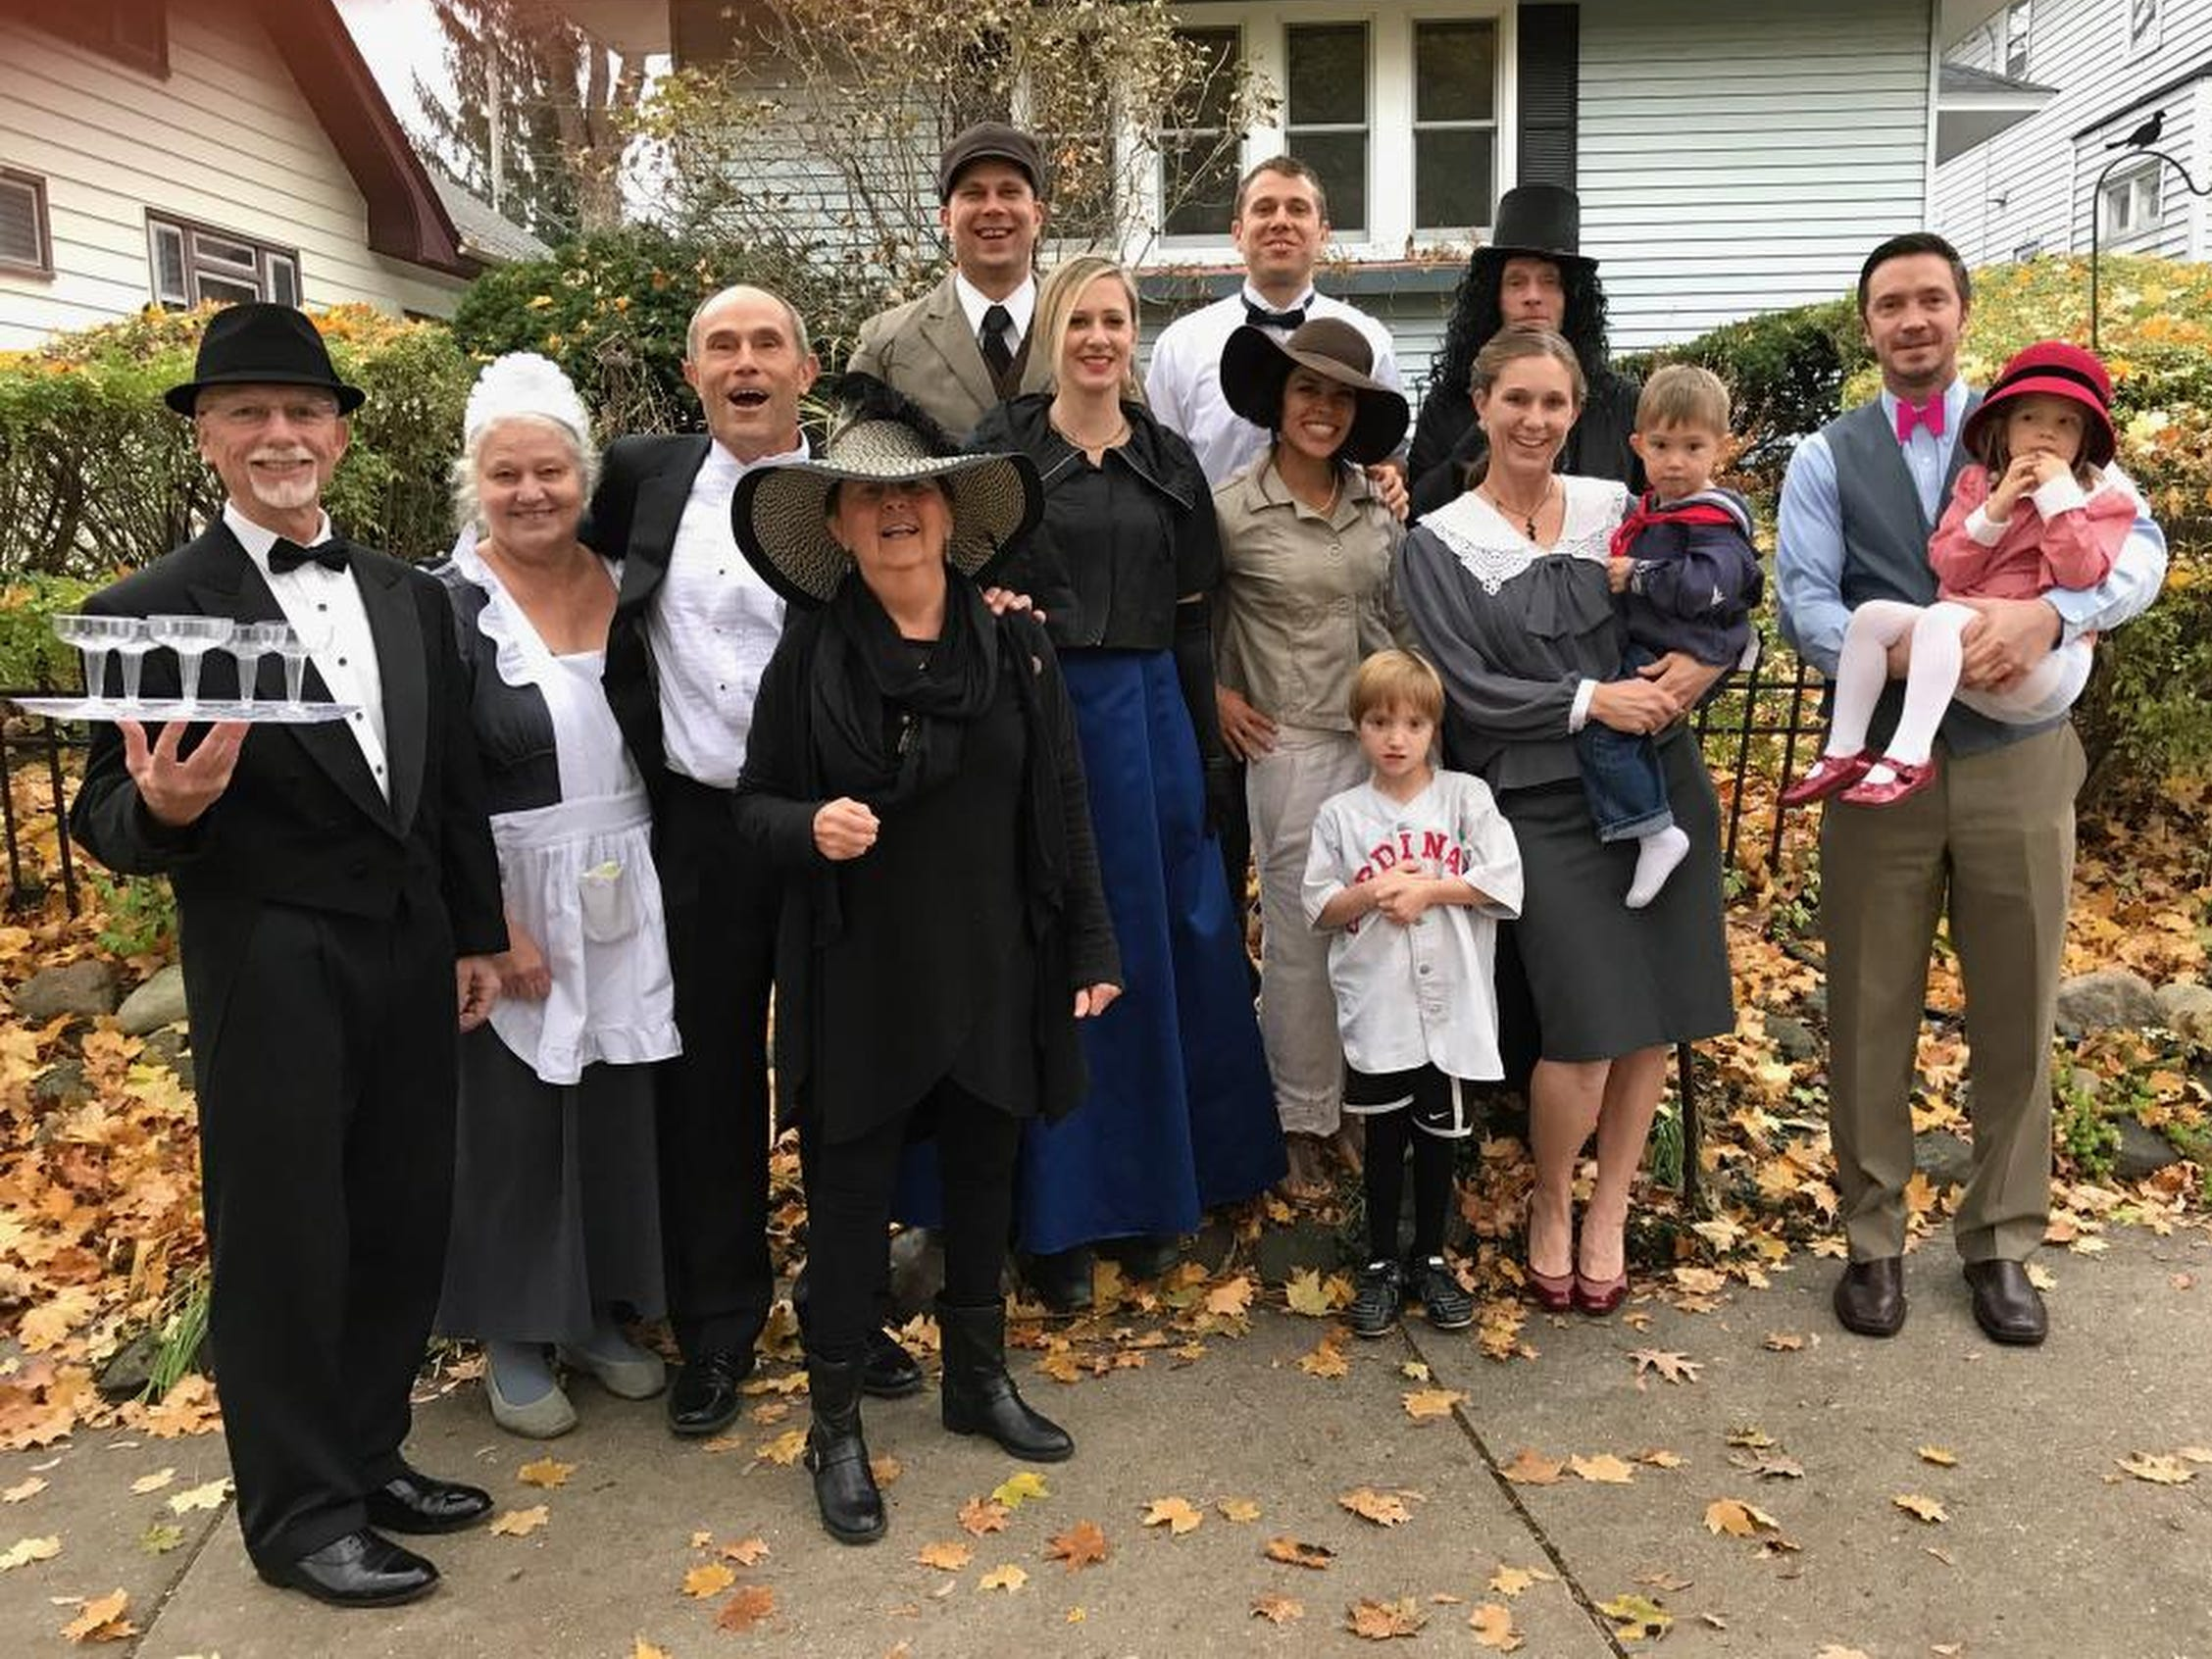 Stingl: It began with PJs in support of ill mom. Now family does costumes every Thanksgiving.